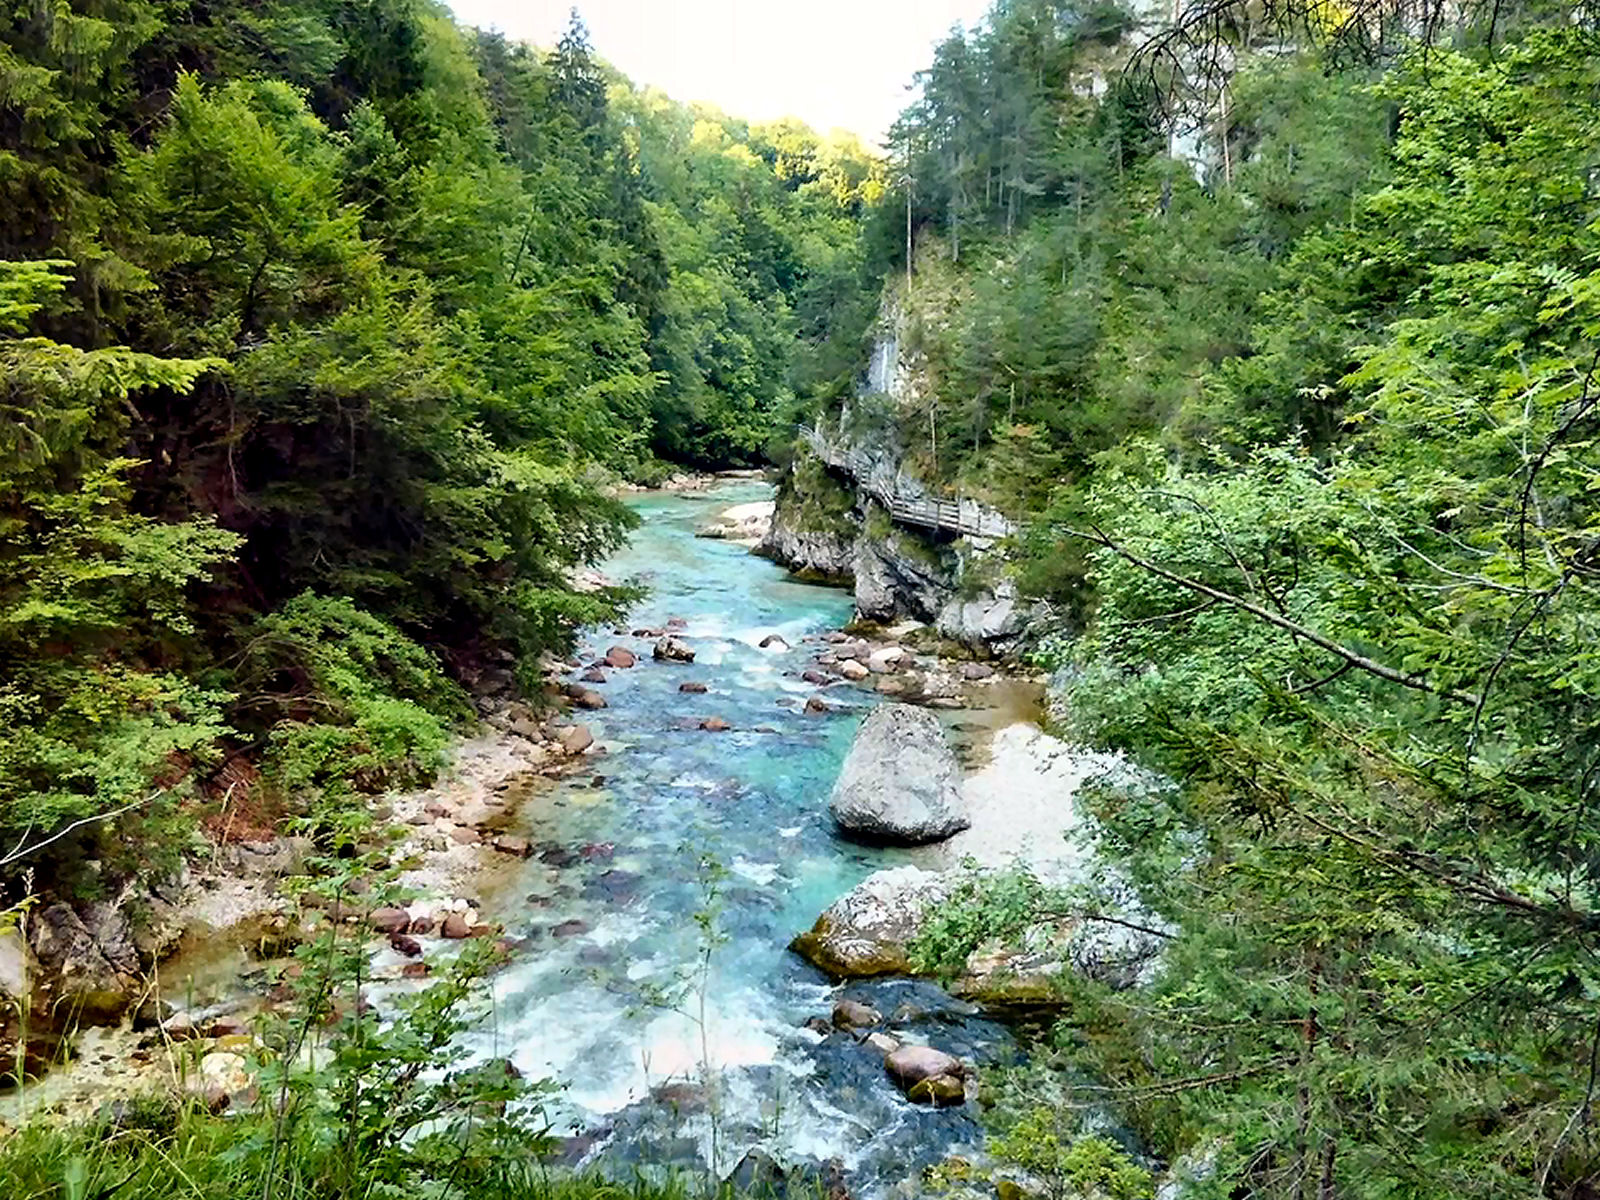 slizza-canyon-italy-34